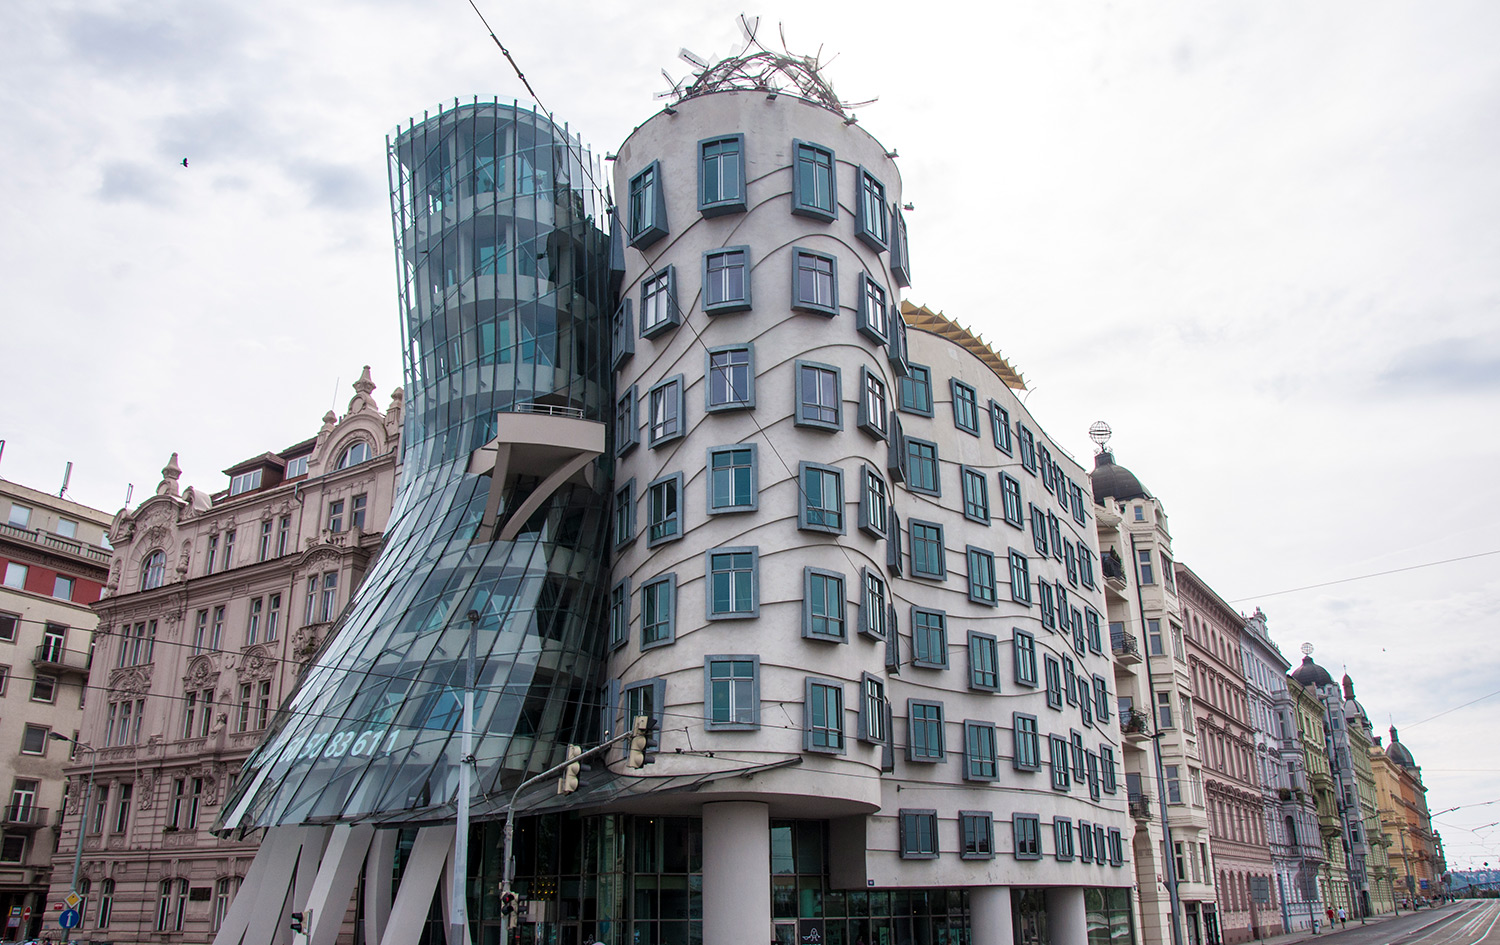 Prague modern architecture, The Dancing House